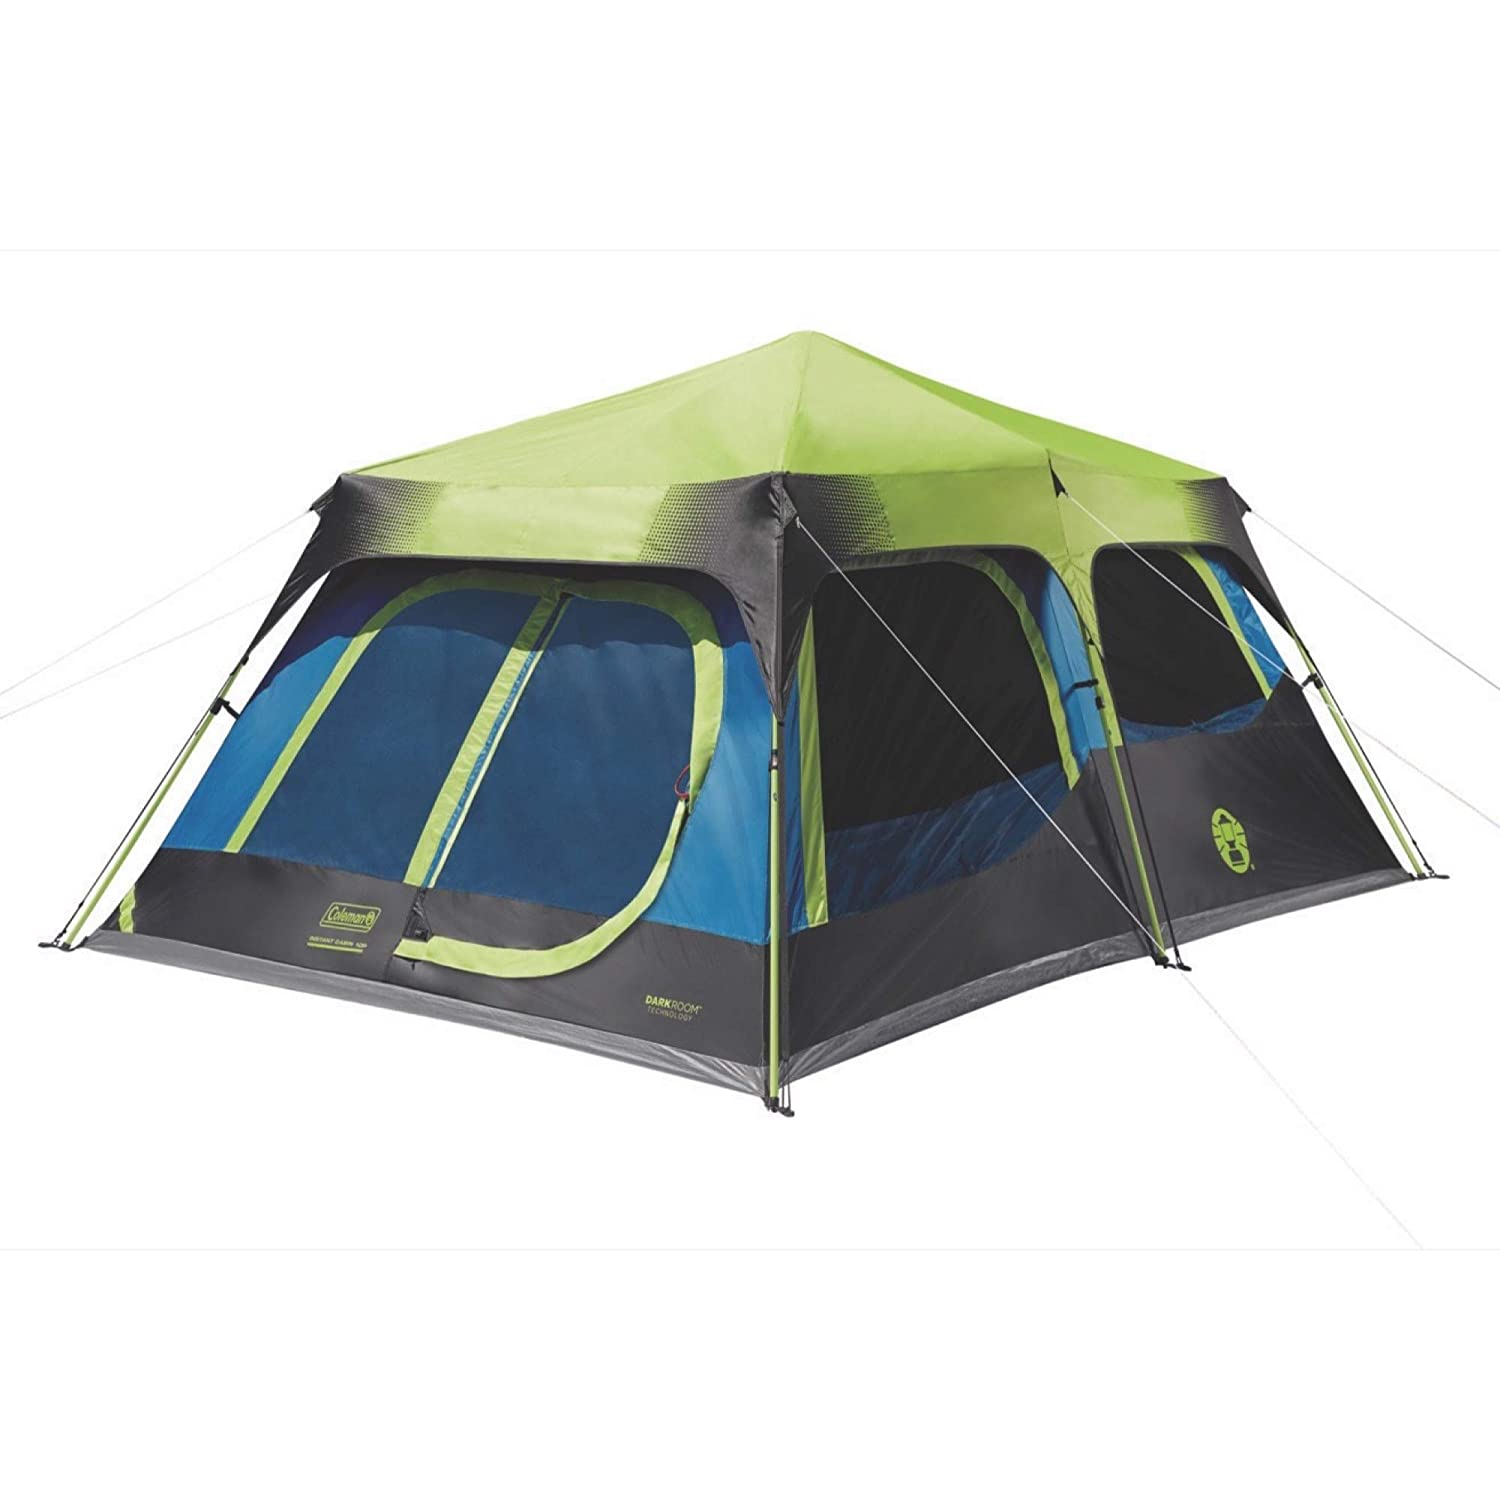 Coleman 10 Person Dark Room Instant Cabin, Instant tents